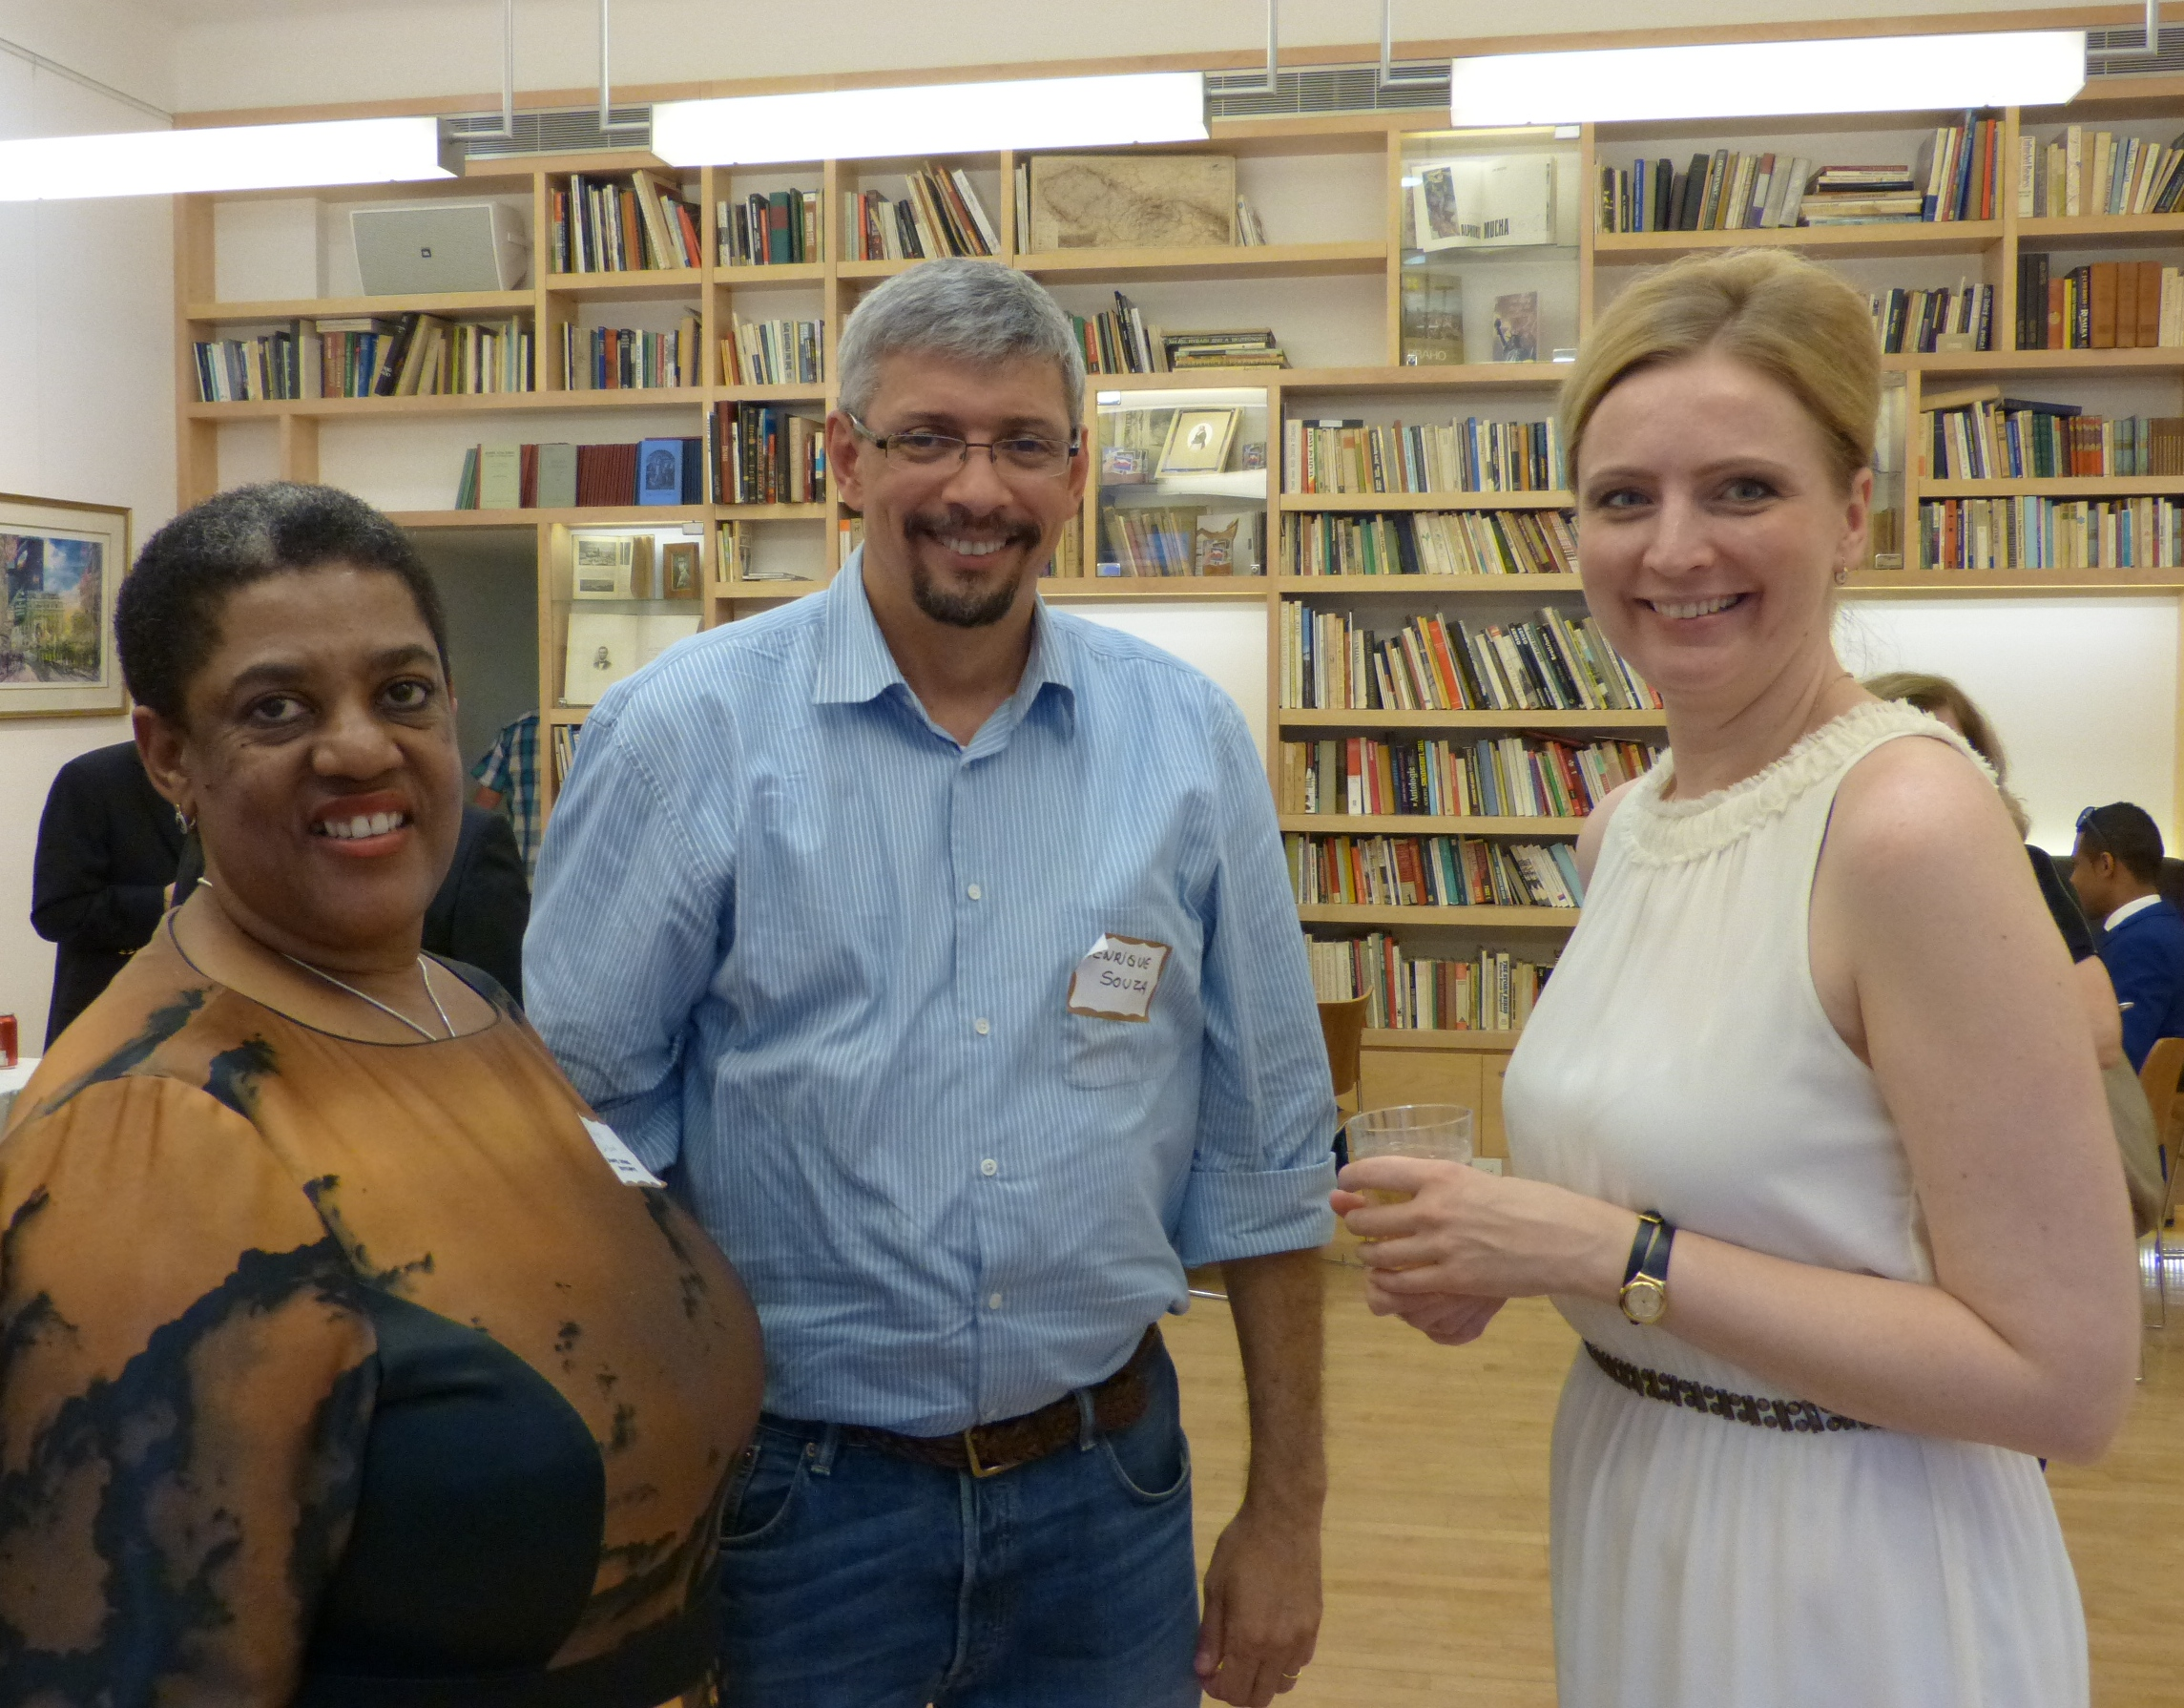 Three GBI summer school students enjoy the opening reception, from left to right: Pinki Chirwa, Henrique Souza, and Jana Zuscinova